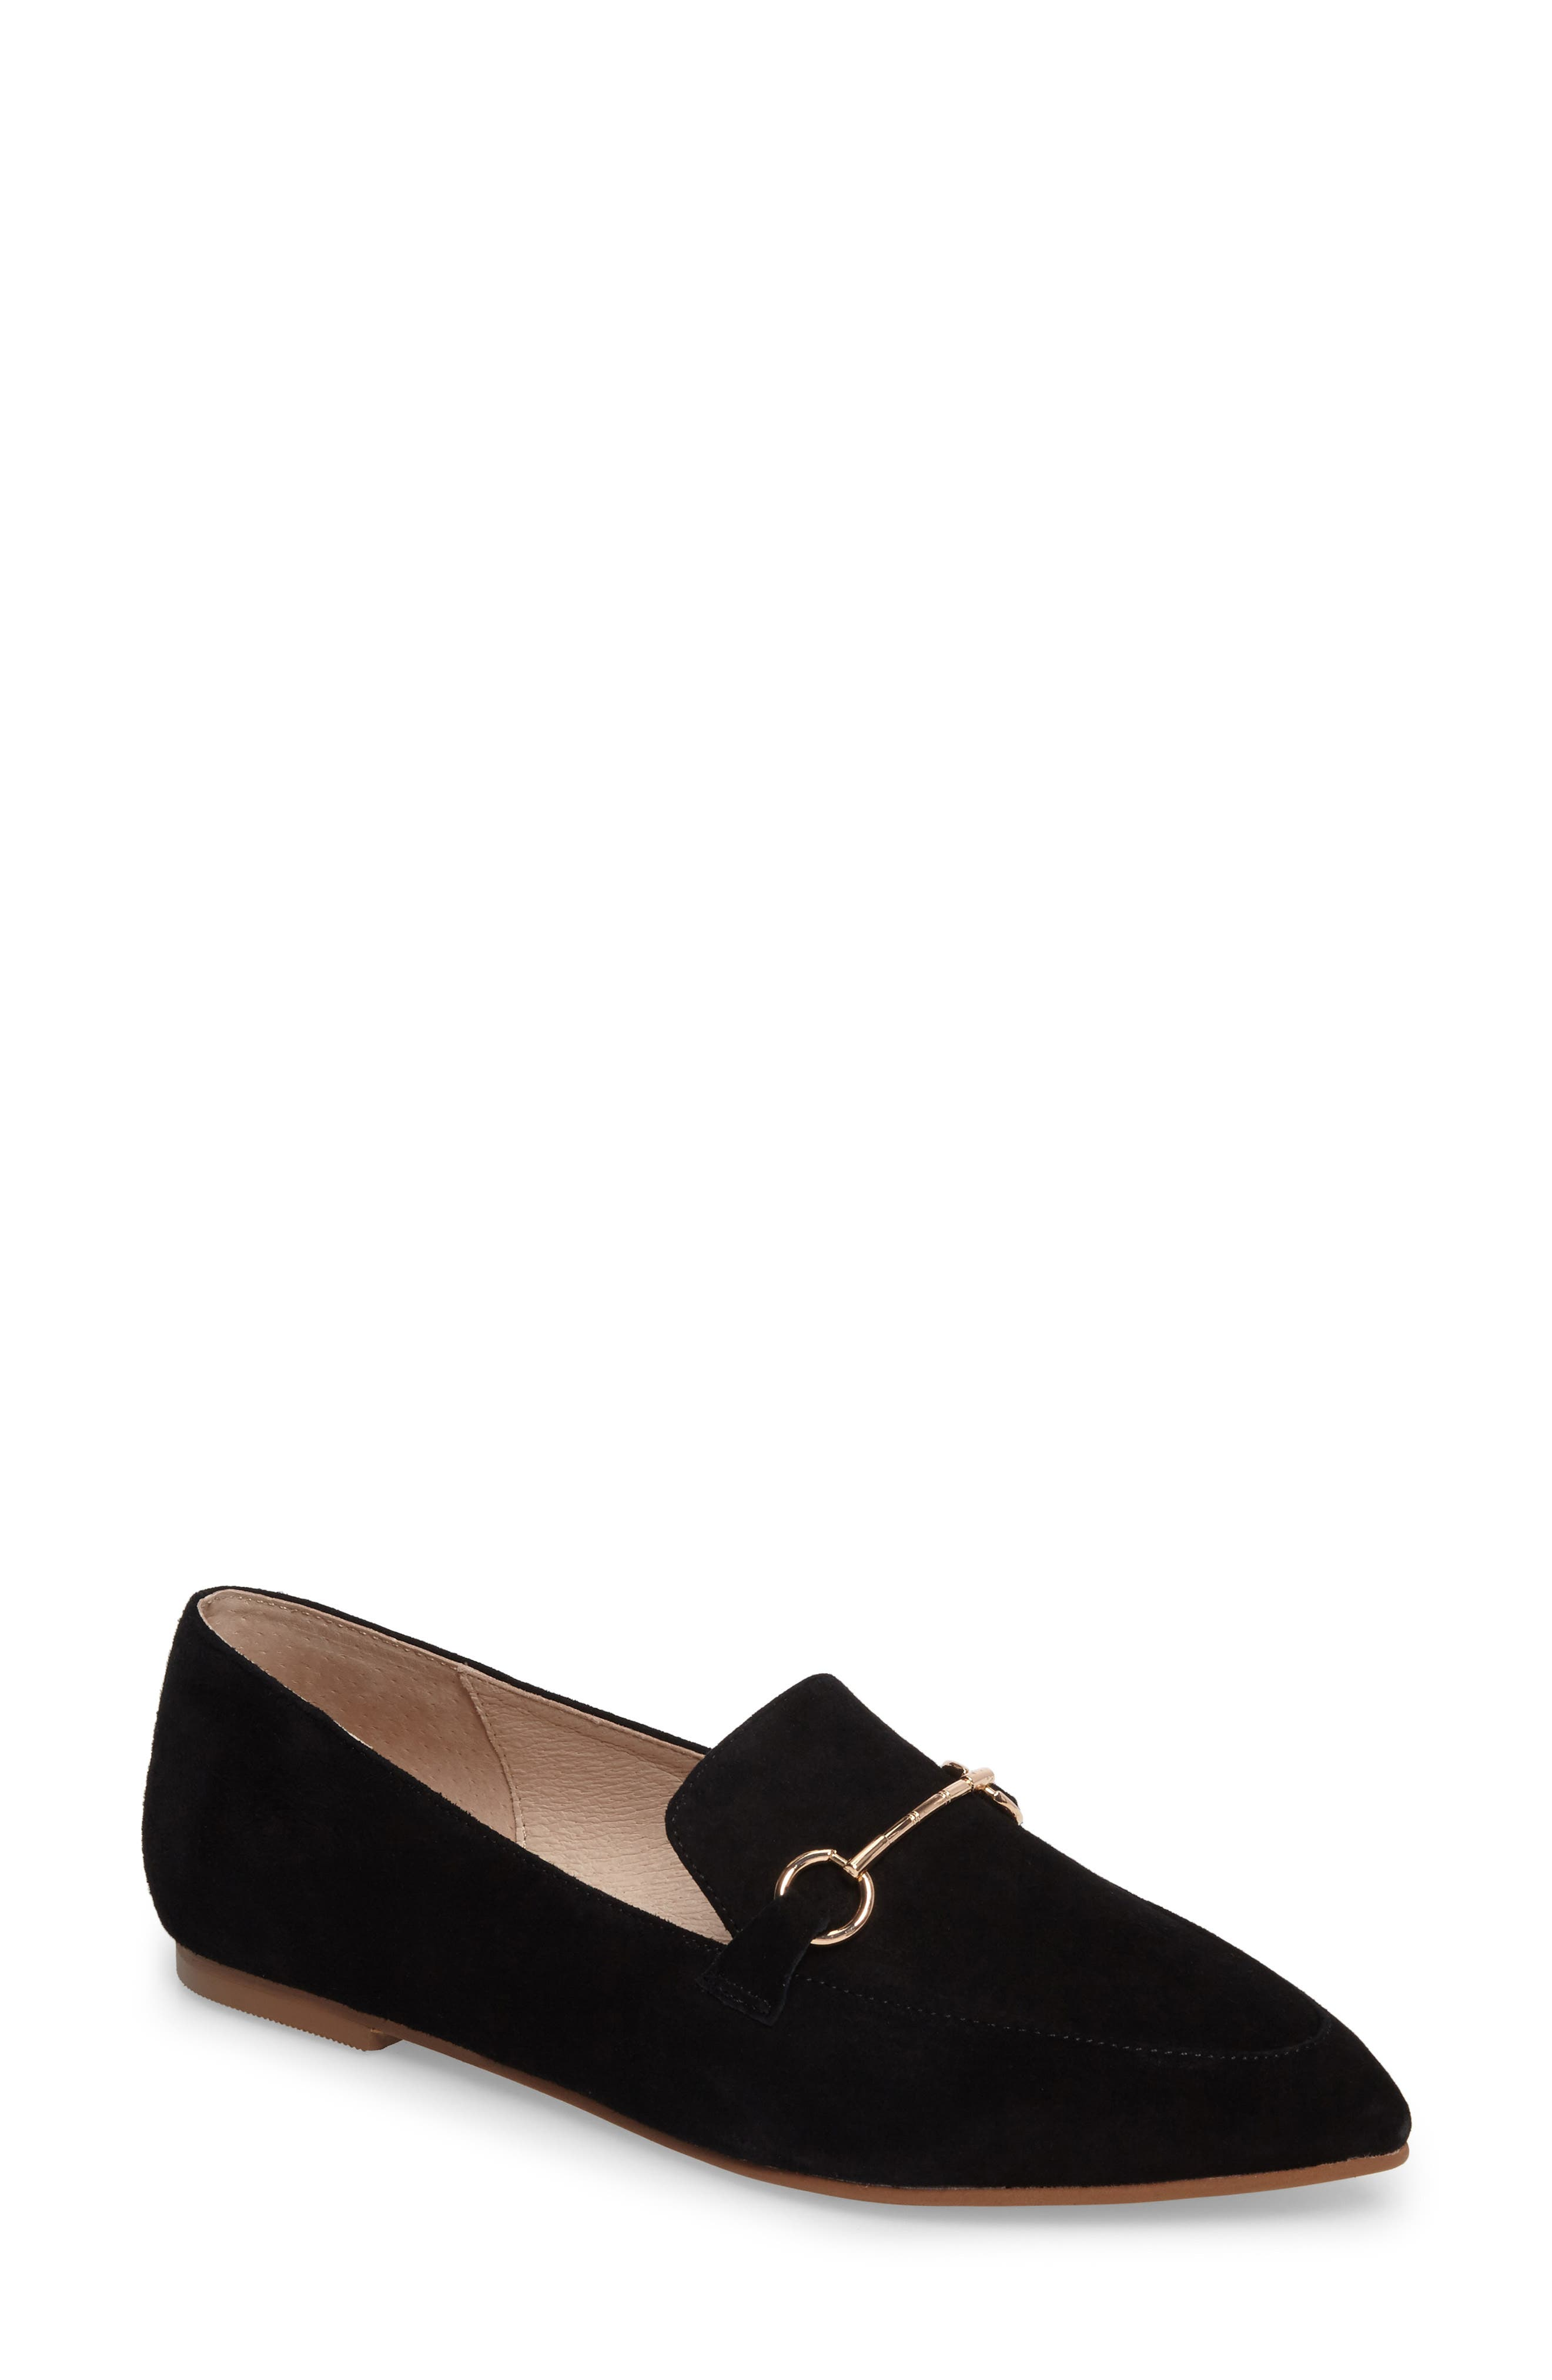 Cambrie Loafer Flat,                         Main,                         color, 001